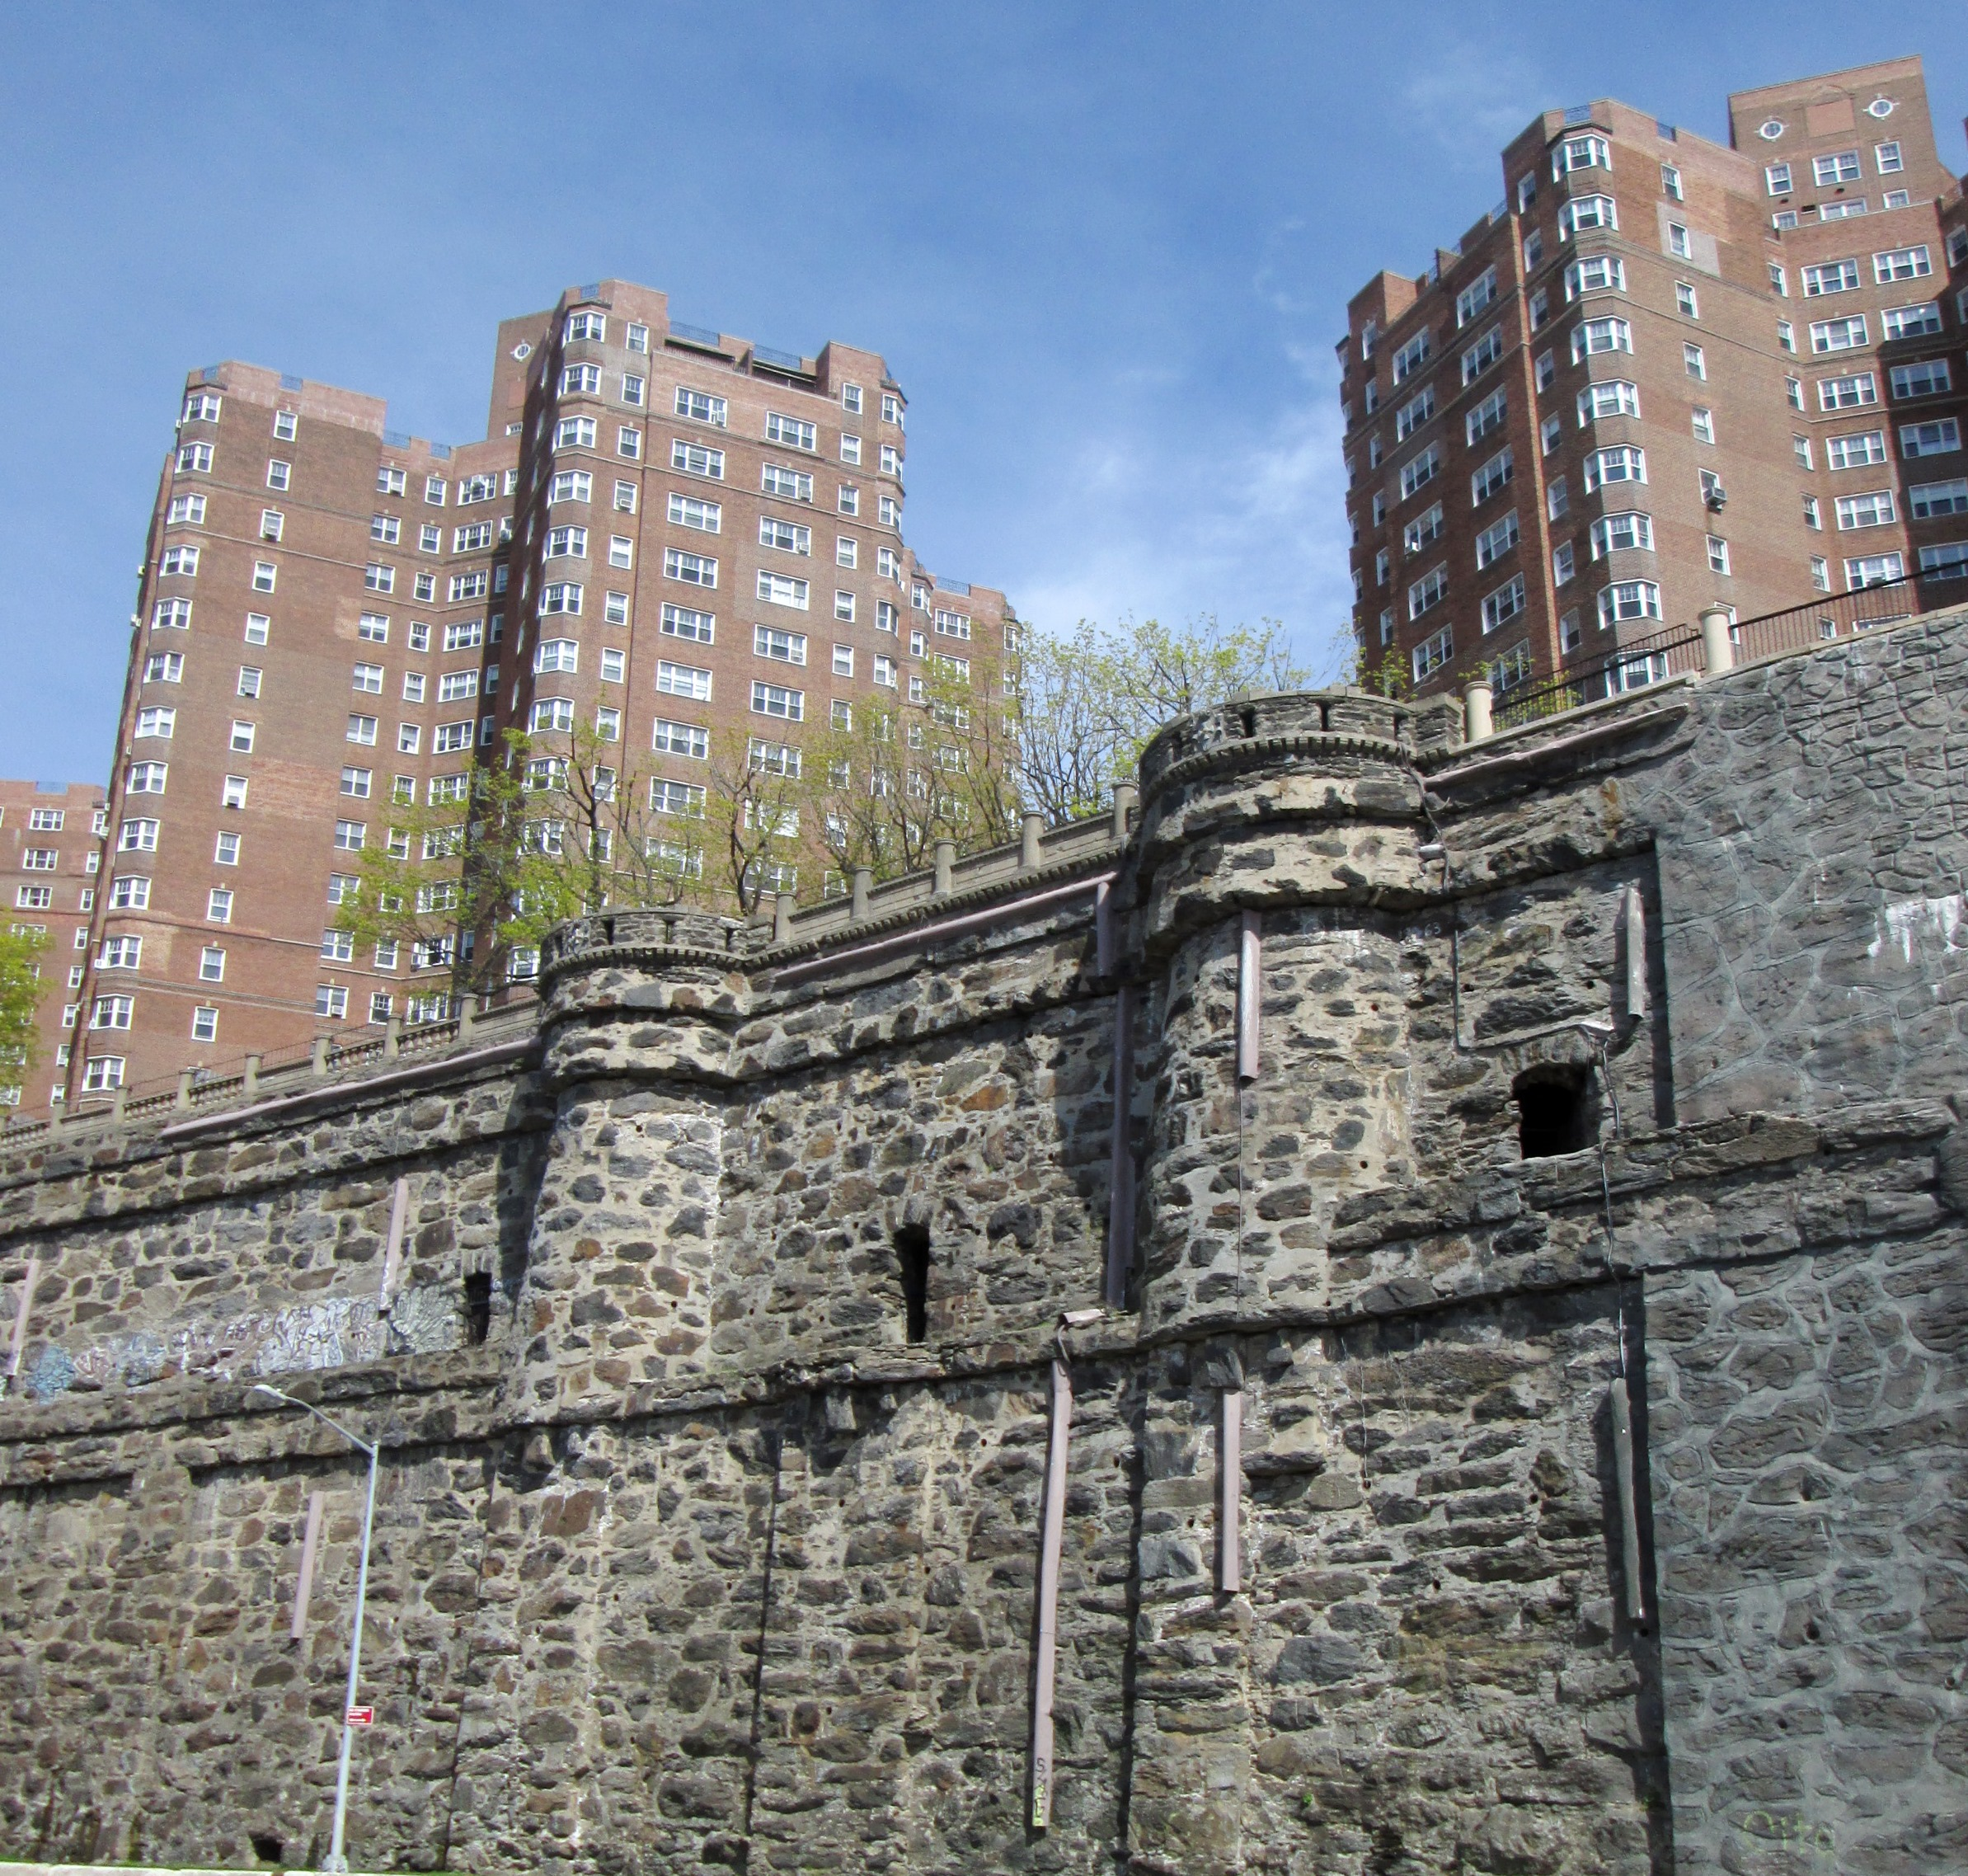 English Village Apartments: File:Castle Village And Retaining Wall From Hudson River